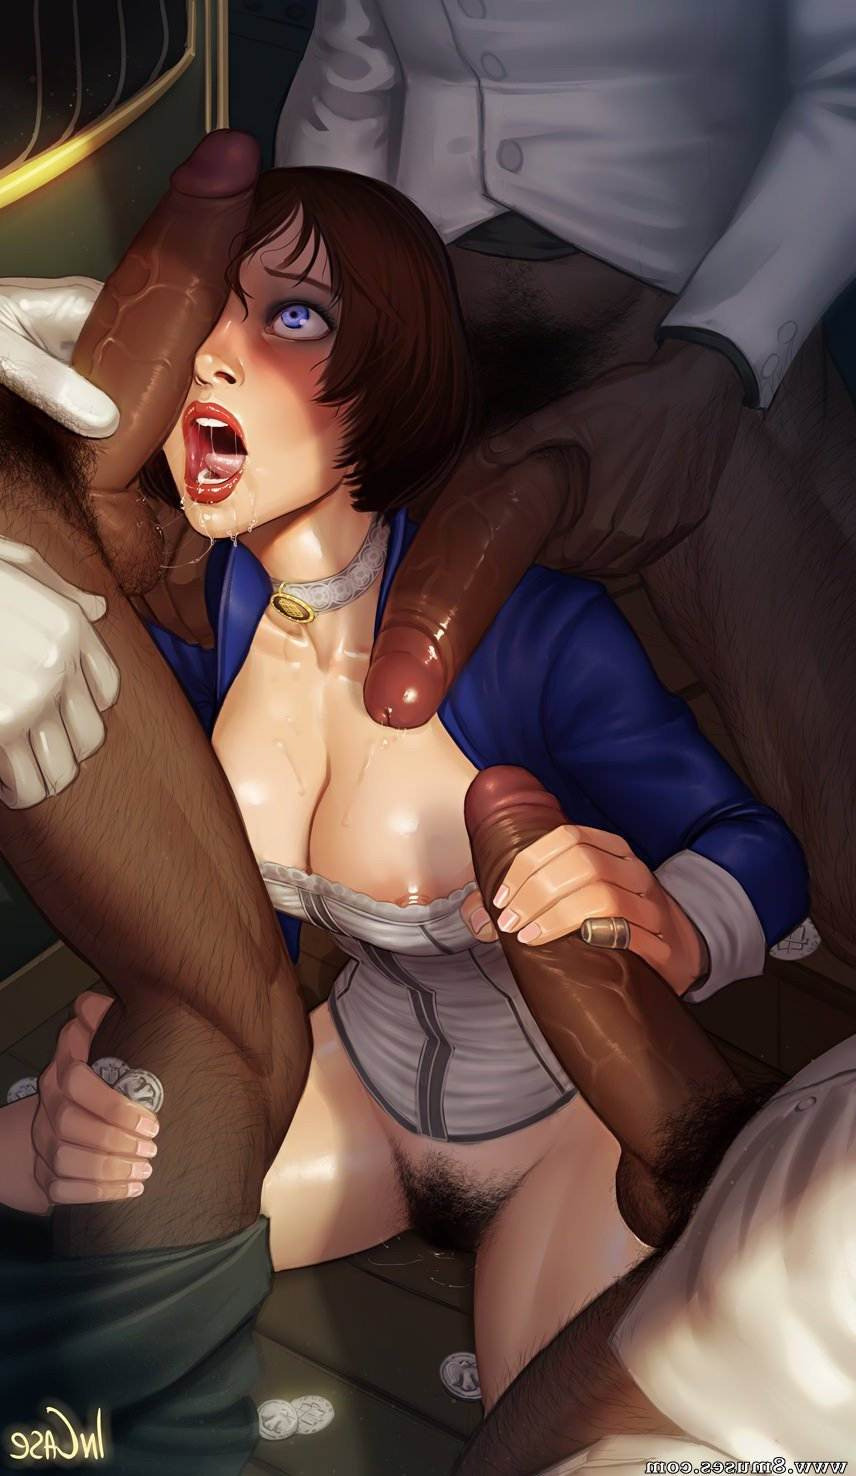 Incase-Comics/Artwork Artwork__8muses_-_Sex_and_Porn_Comics_274.jpg